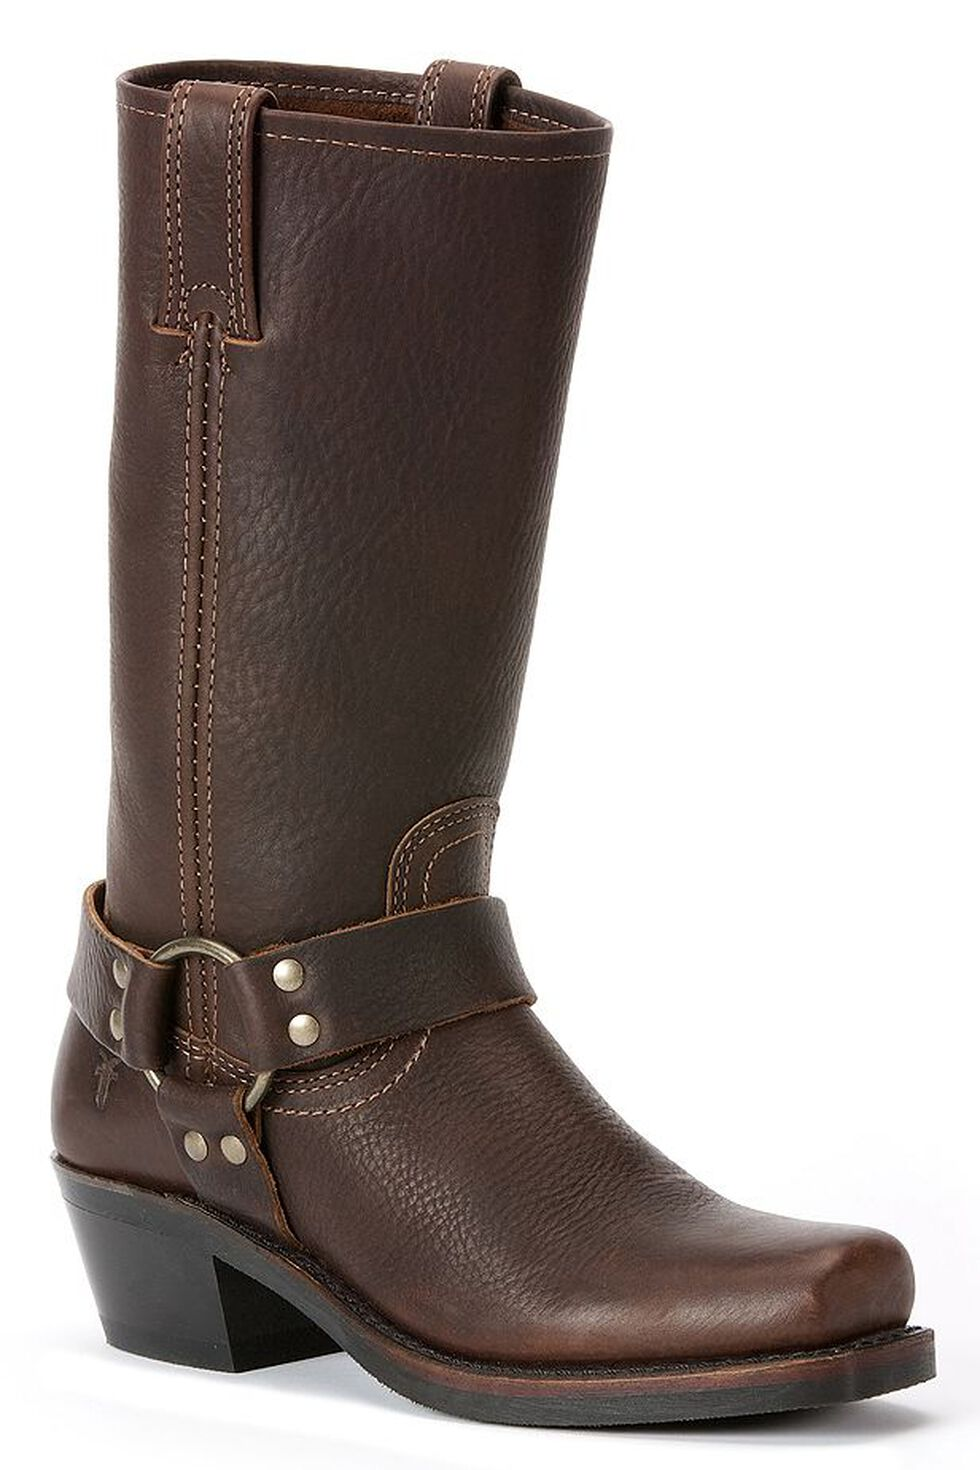 Frye  Women's Harness Boots - Square Toe, Brown, hi-res